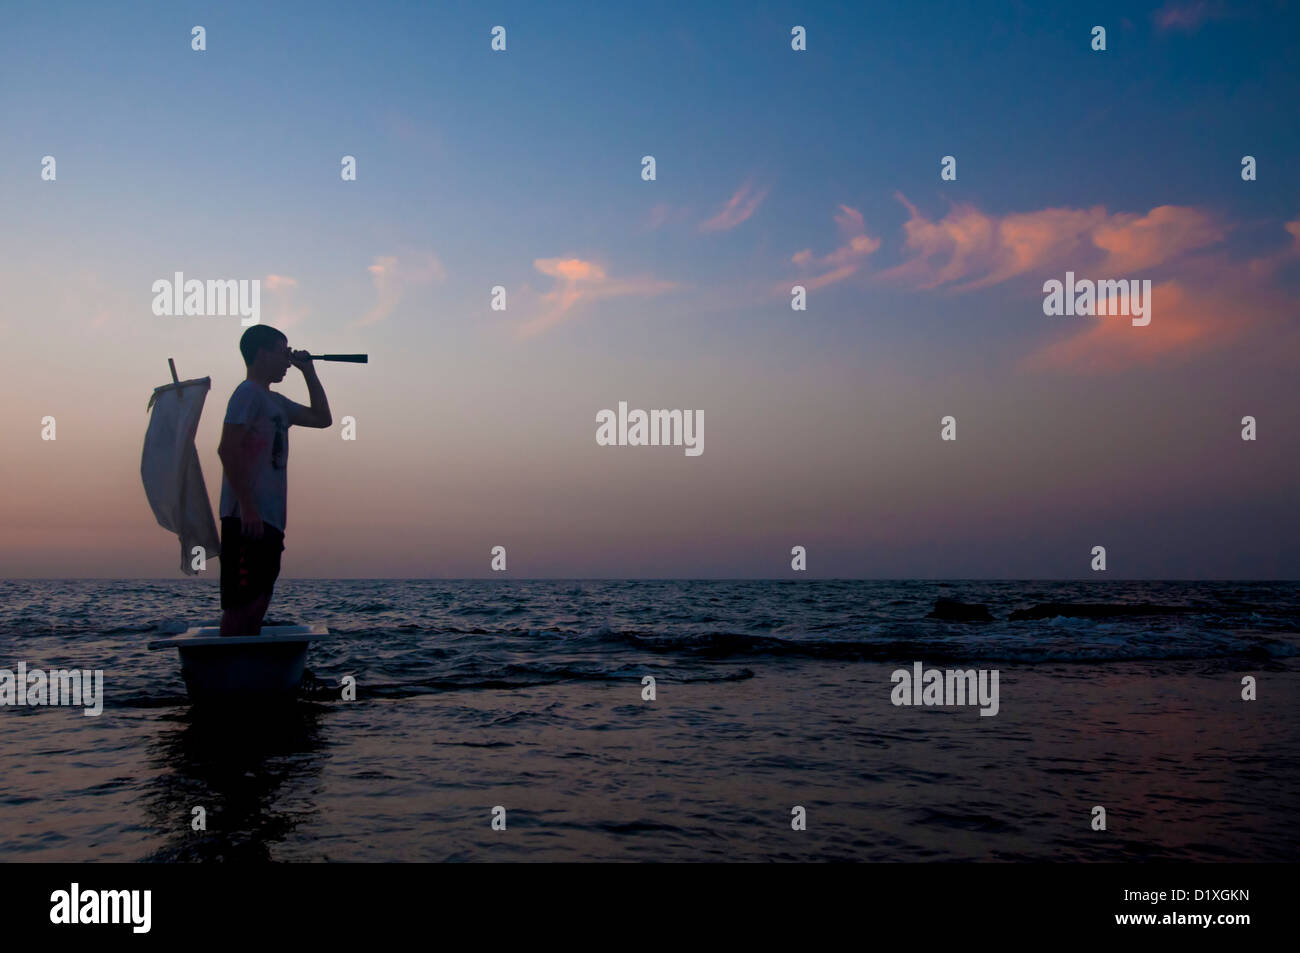 Silhouette of a man standing in a bathtub like boat with a telescope - Stock Image